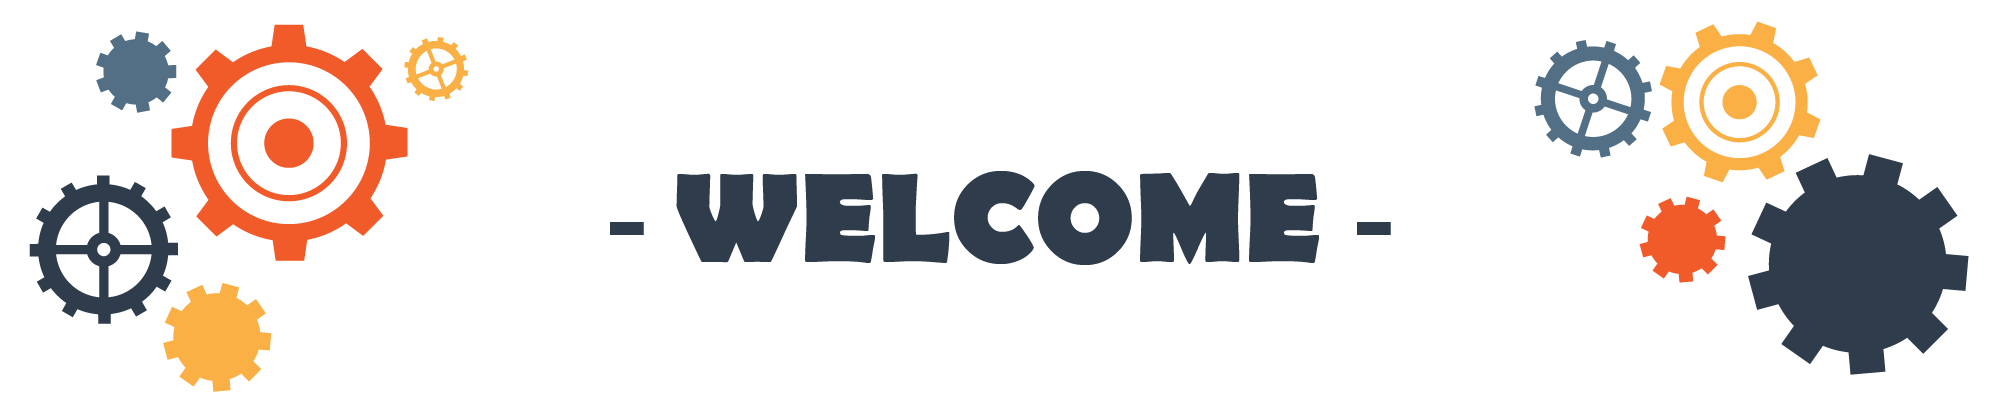 Welcome Banner copy.png